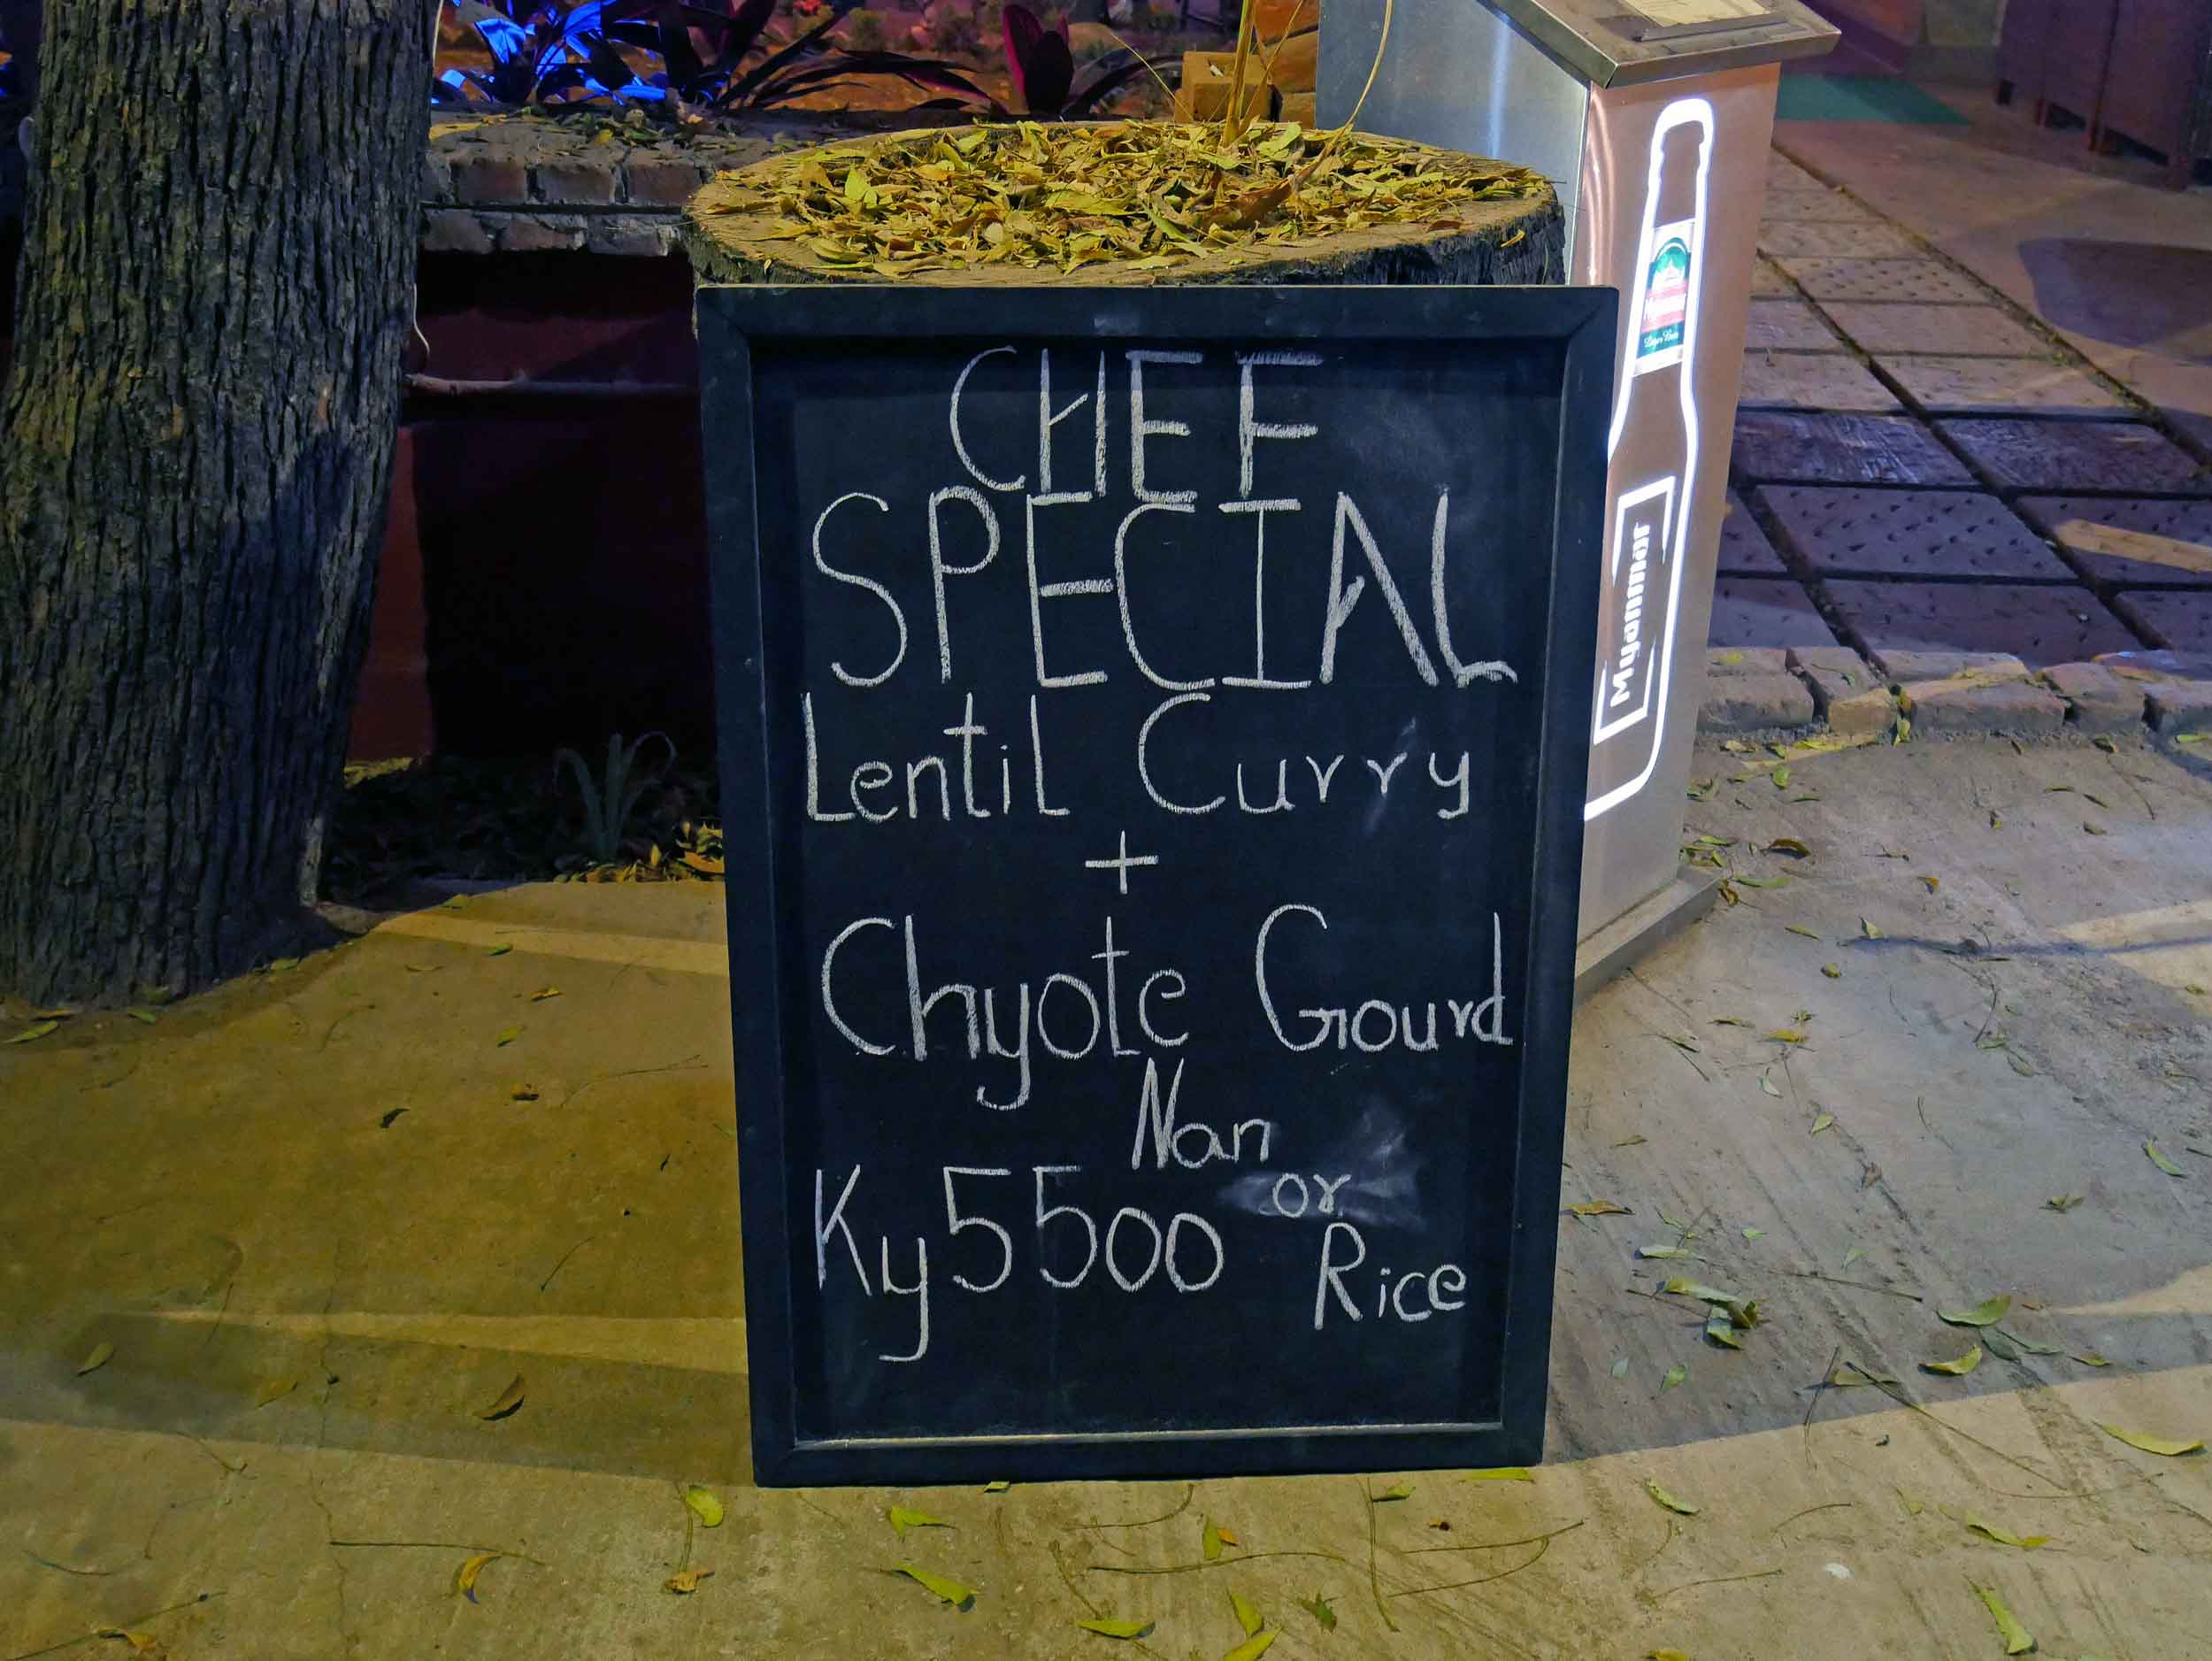 We had to try the nightly Chef's Special, especially at the very affordable price of 5,500 Kyat or 4USD.